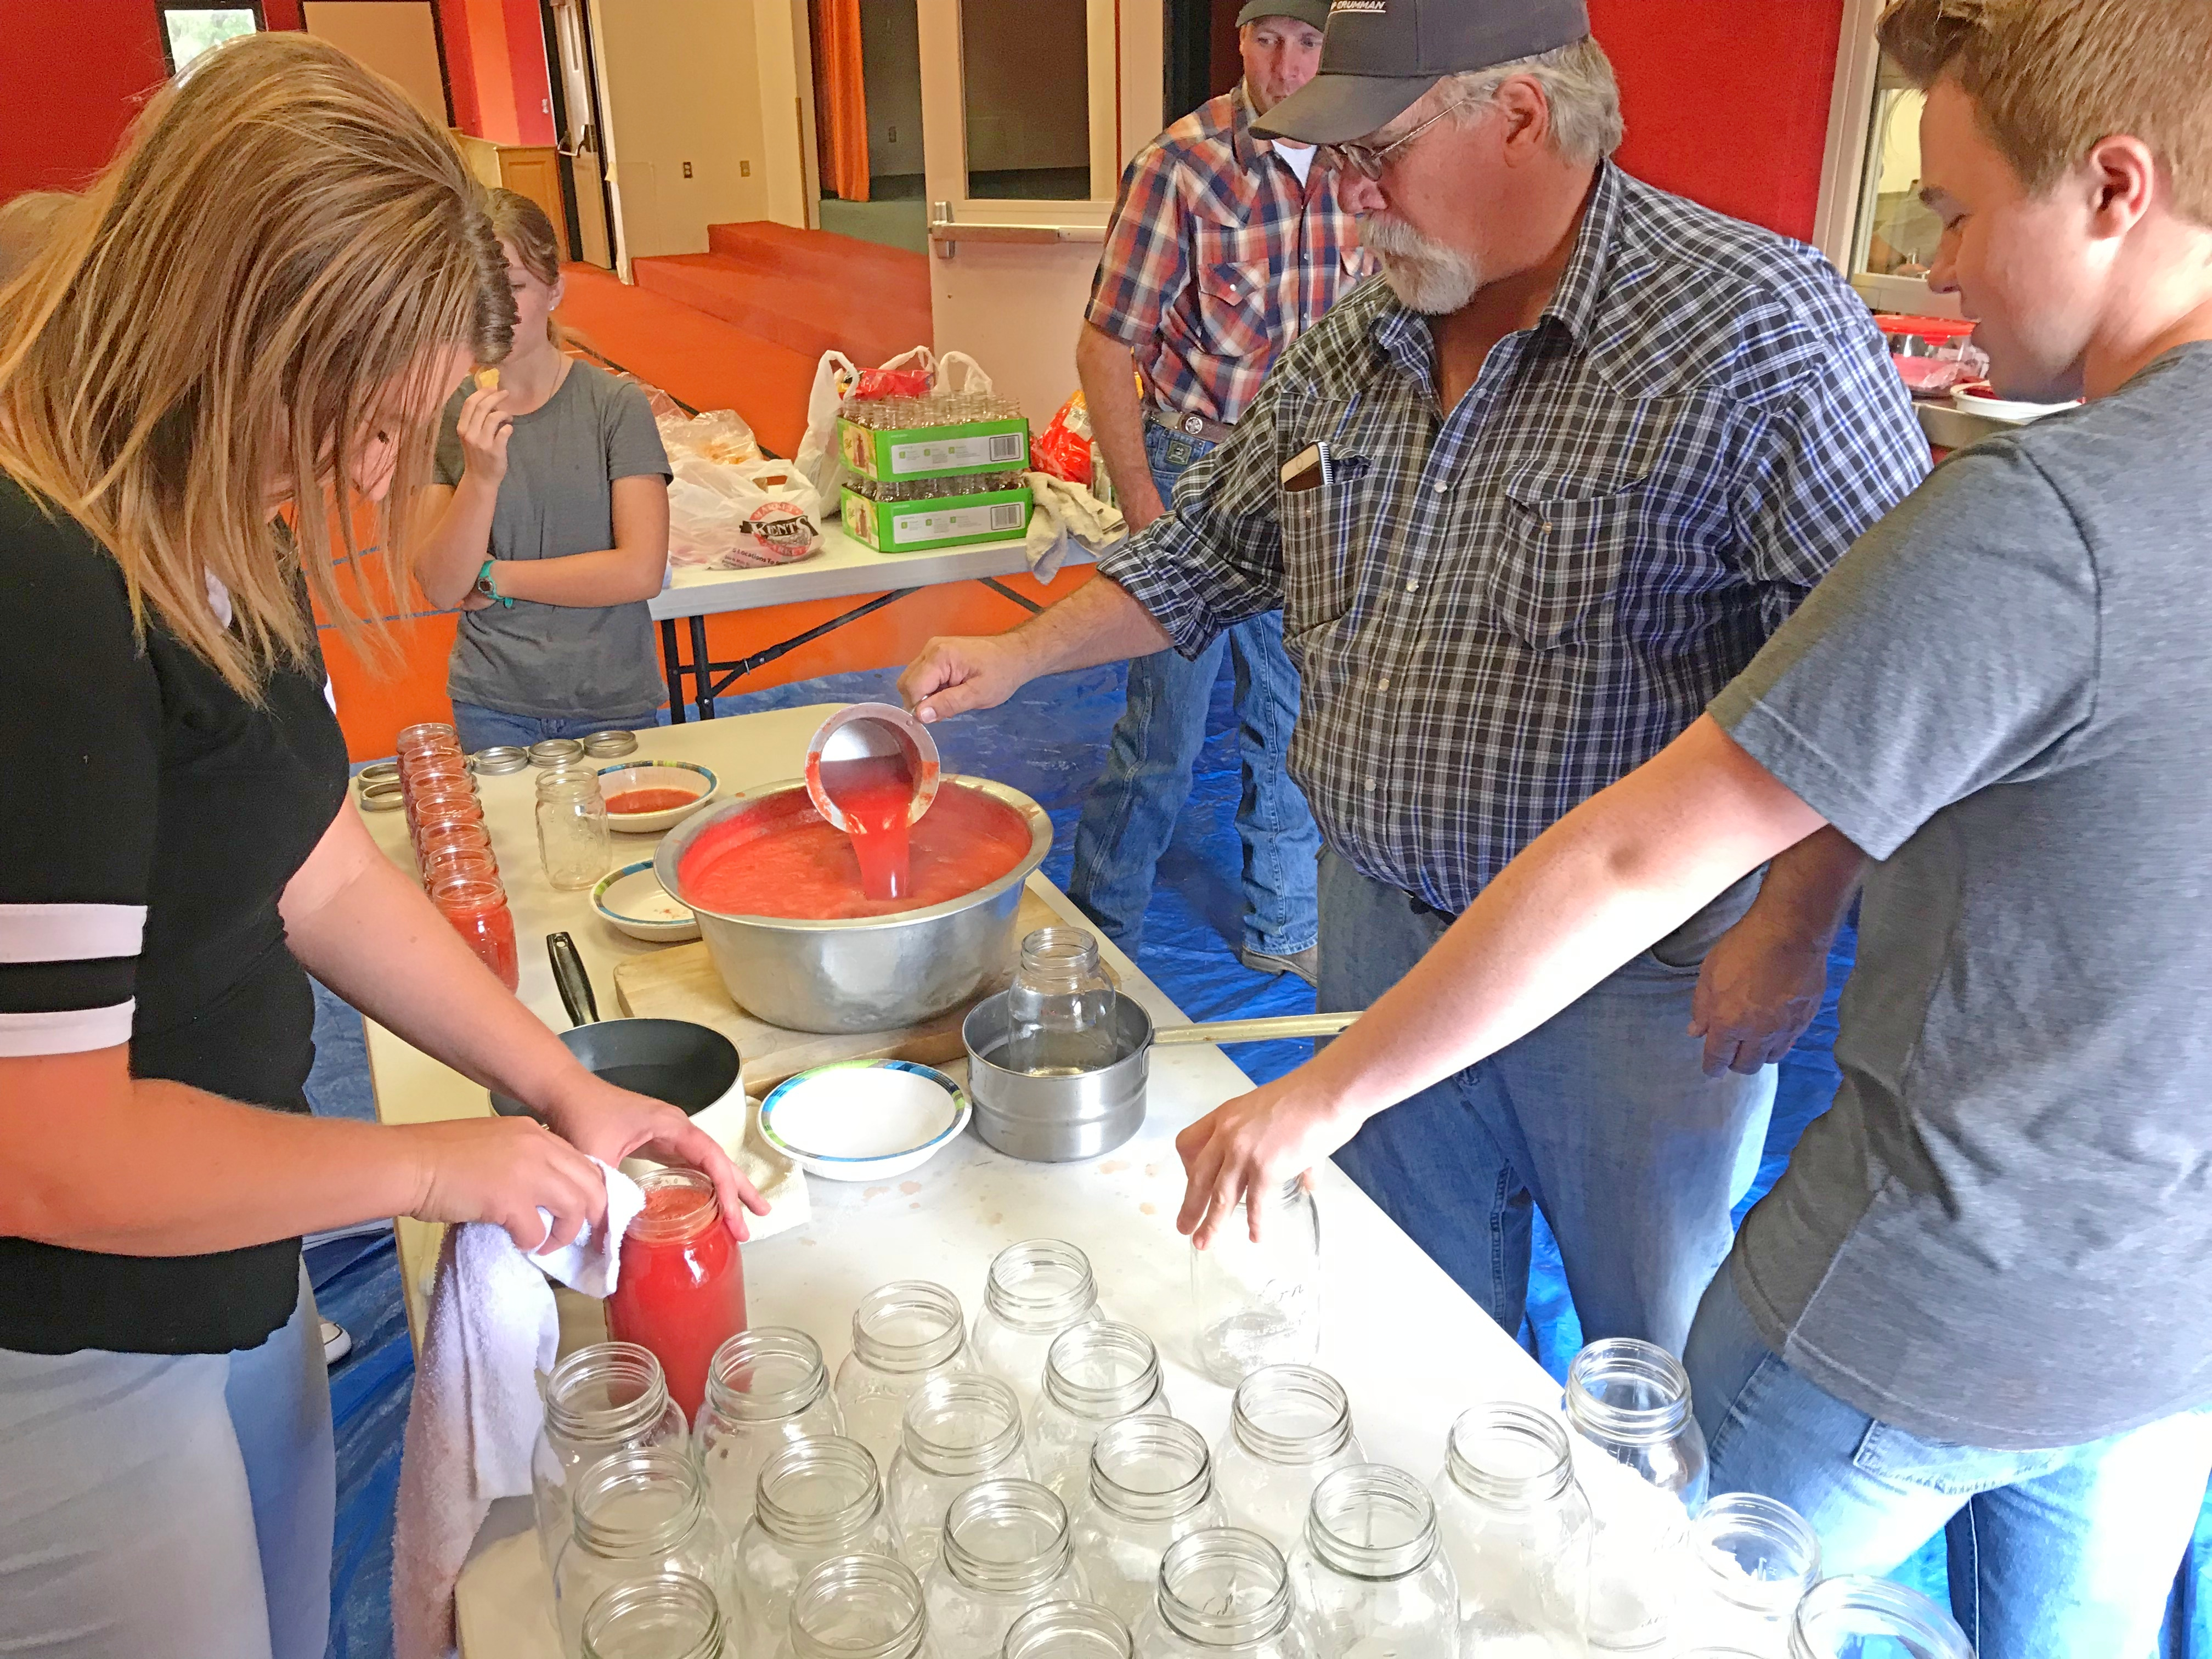 Center, Alan Johnson, first counselor in the Howell Ward bishopric, prepares to pour tomato juice into a bottle during a youth canning activity at the Howell Community Center on Saturday, Sept. 8, 2018.